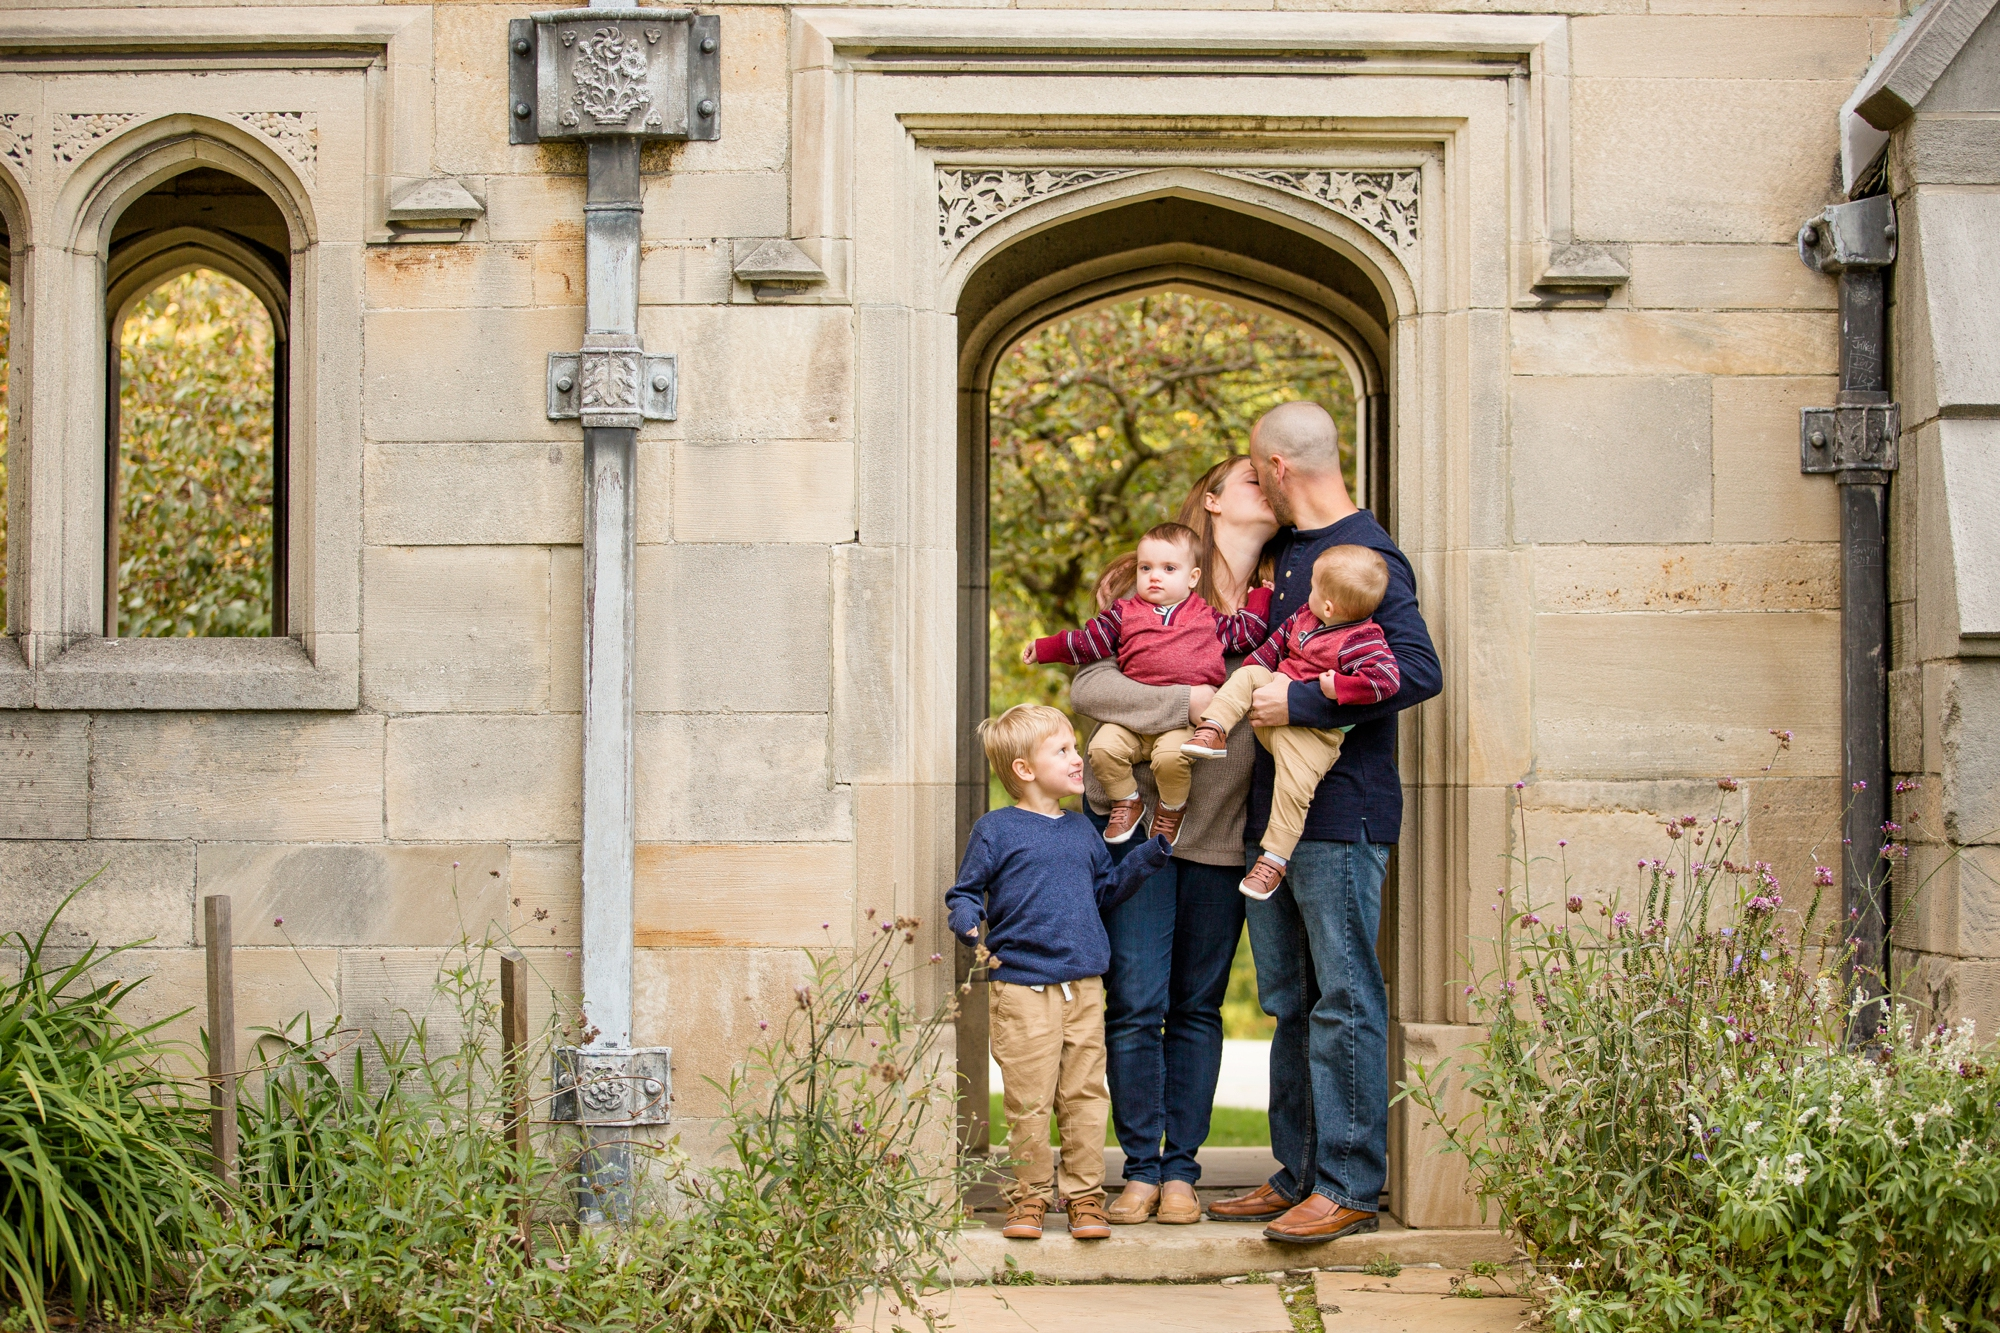 best places to take pictures in pittsburgh, cool places to take pictures in pittsburgh, hartwood acres mansion, pittsburgh family photographer, hartwood acres family photographer